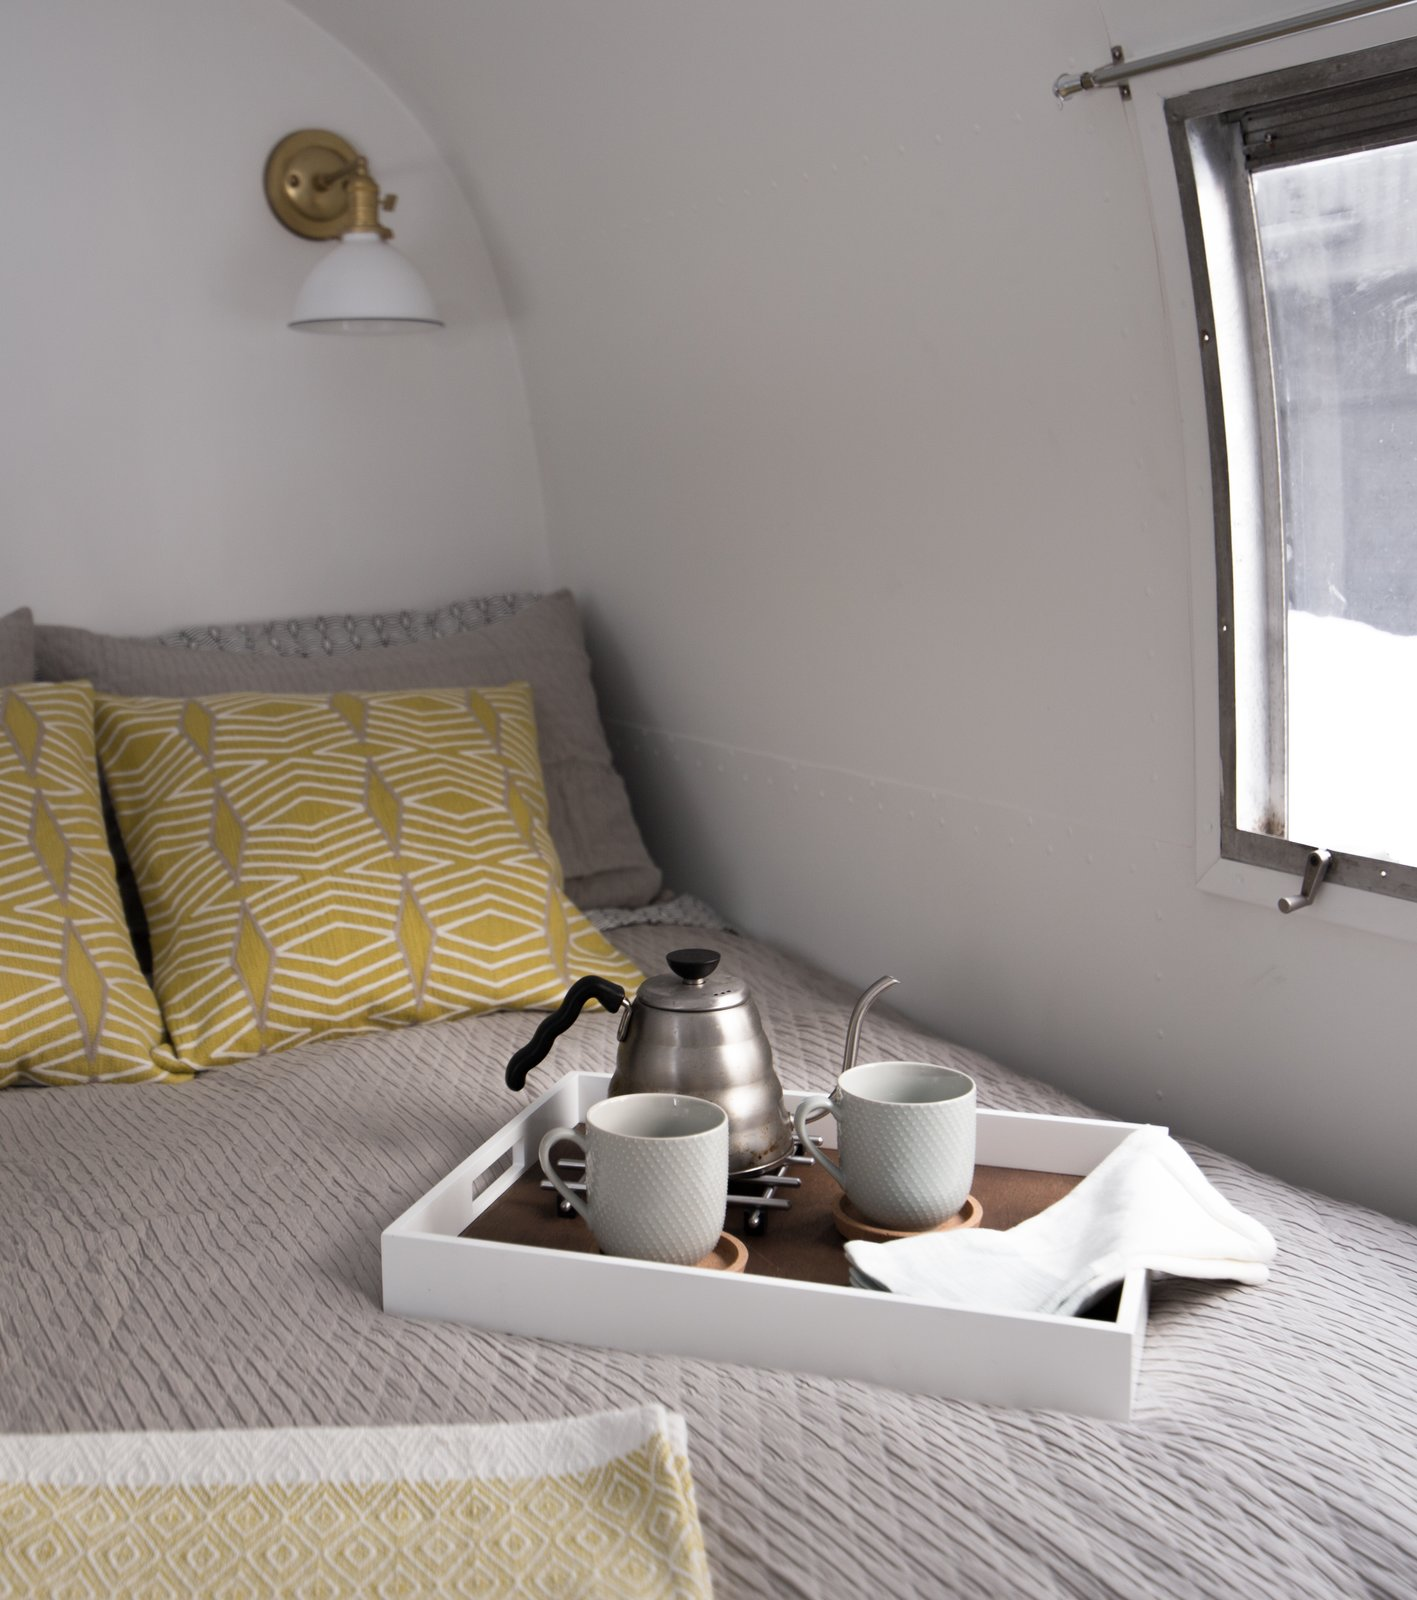 Photo 12 of 25 in See How an Oregon Couple Renovated Their 1966 Airstream